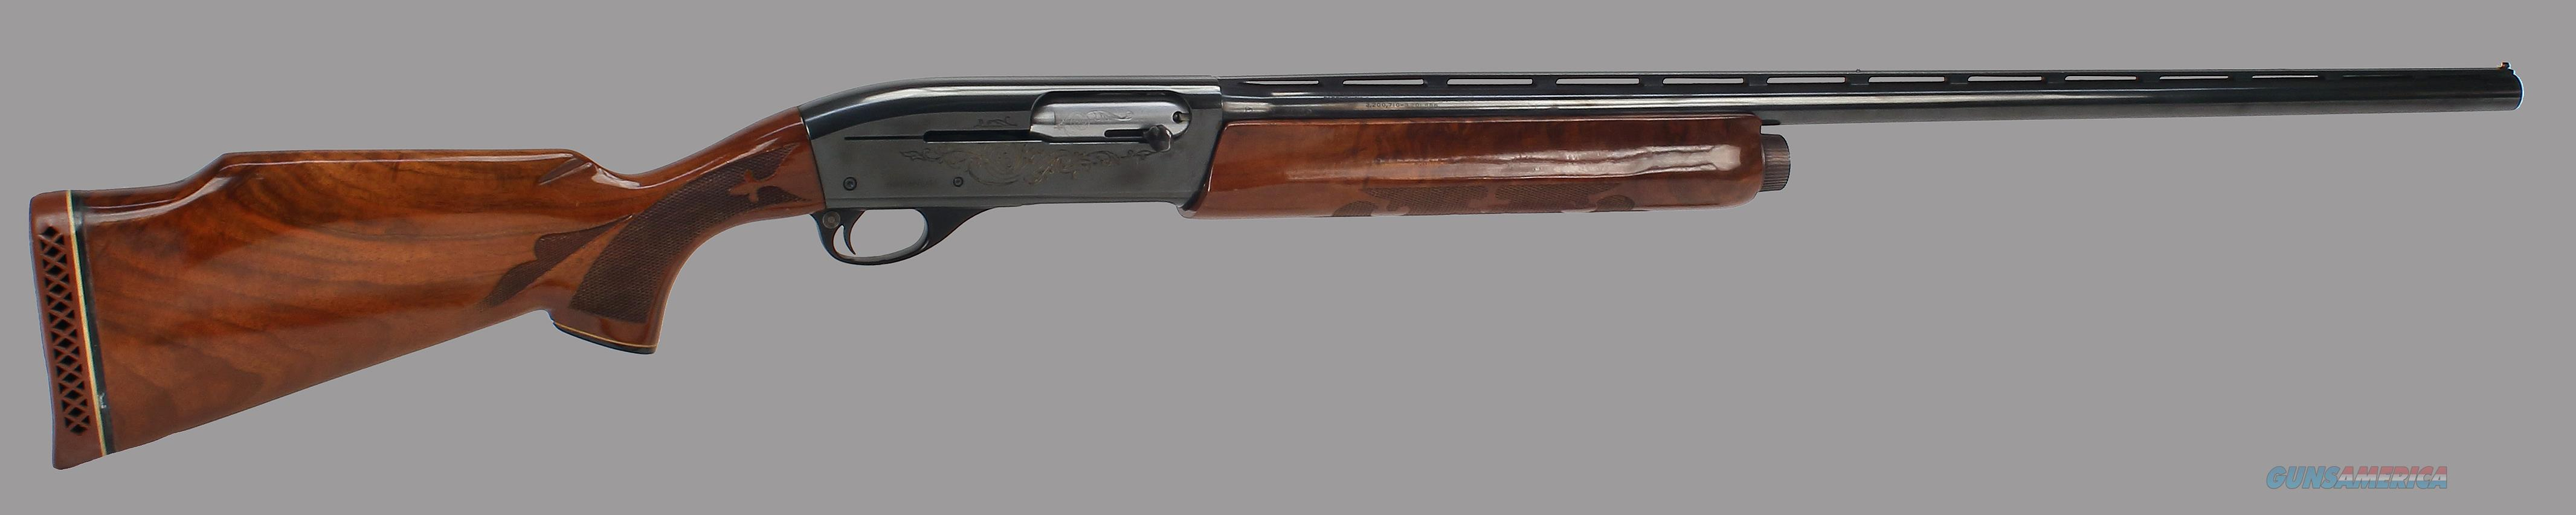 Remington 12ga Model 1100 Shotgun  Guns > Shotguns > Remington Shotguns  > Autoloaders > Hunting